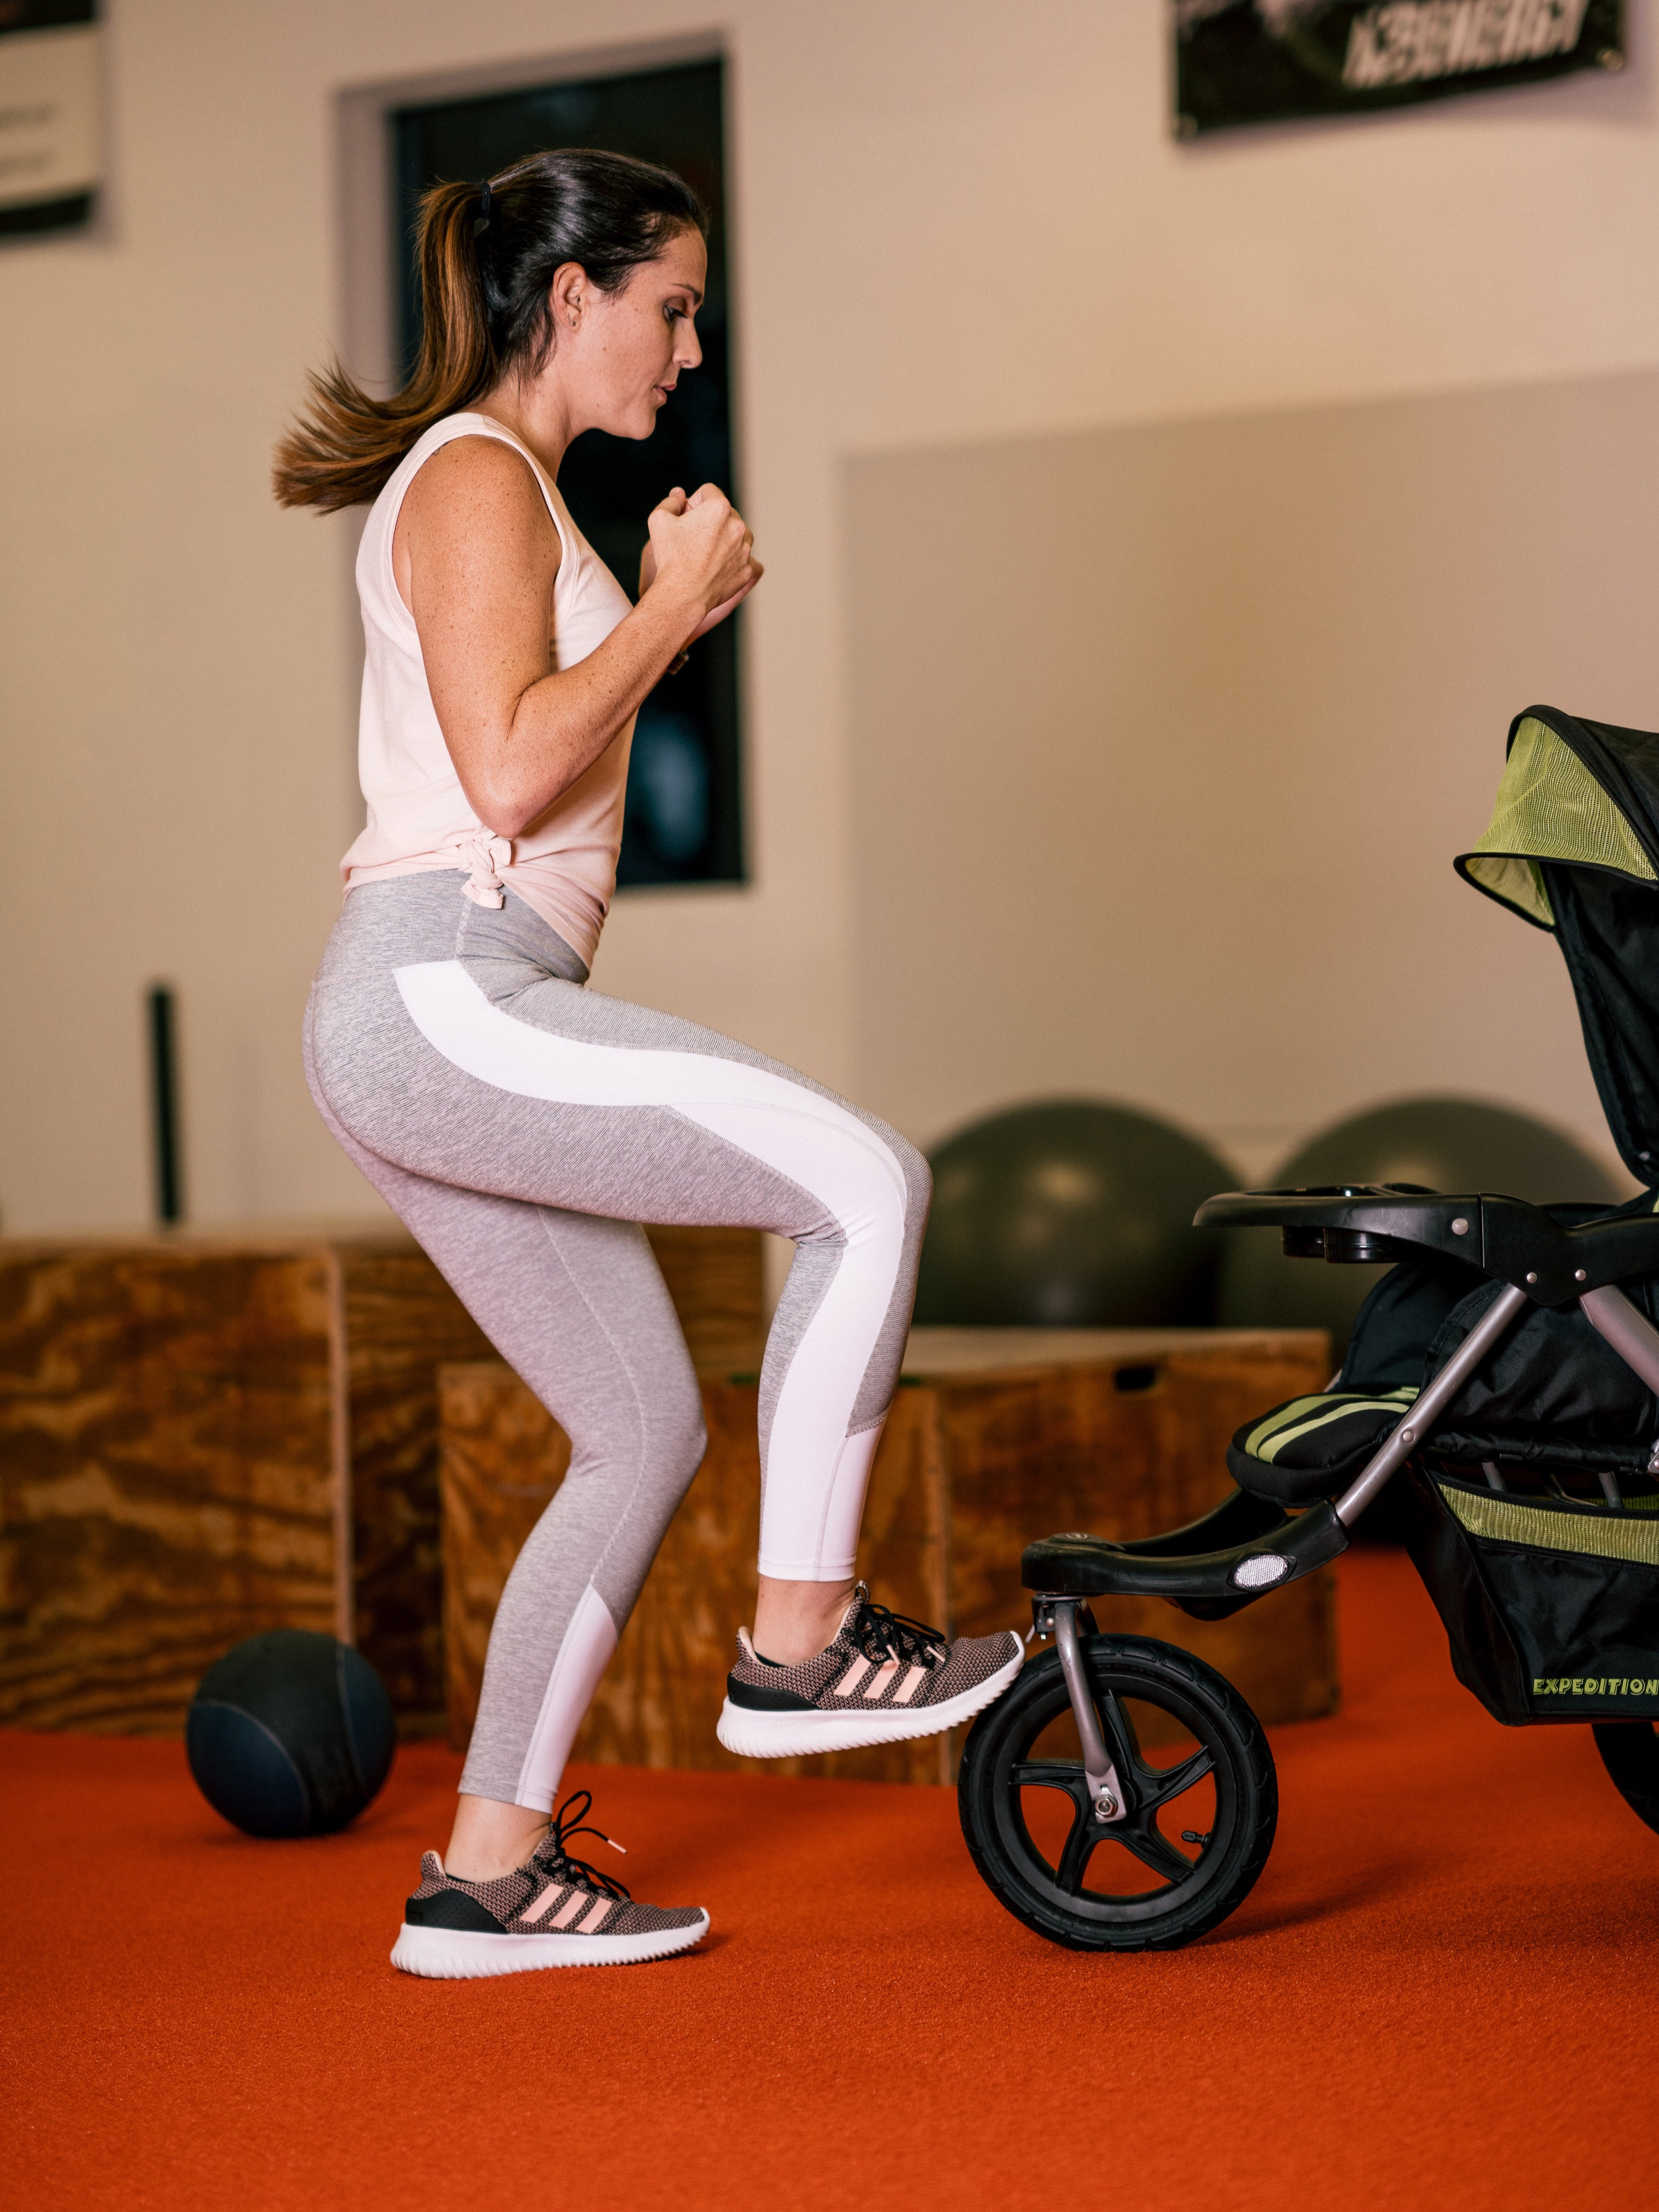 Modifications offered to fit all mamas' needs - We offer low and high impact classes. All classes offer different modifications in order for all mamas to be comfortable at their own level of fitness.Learn more ➝